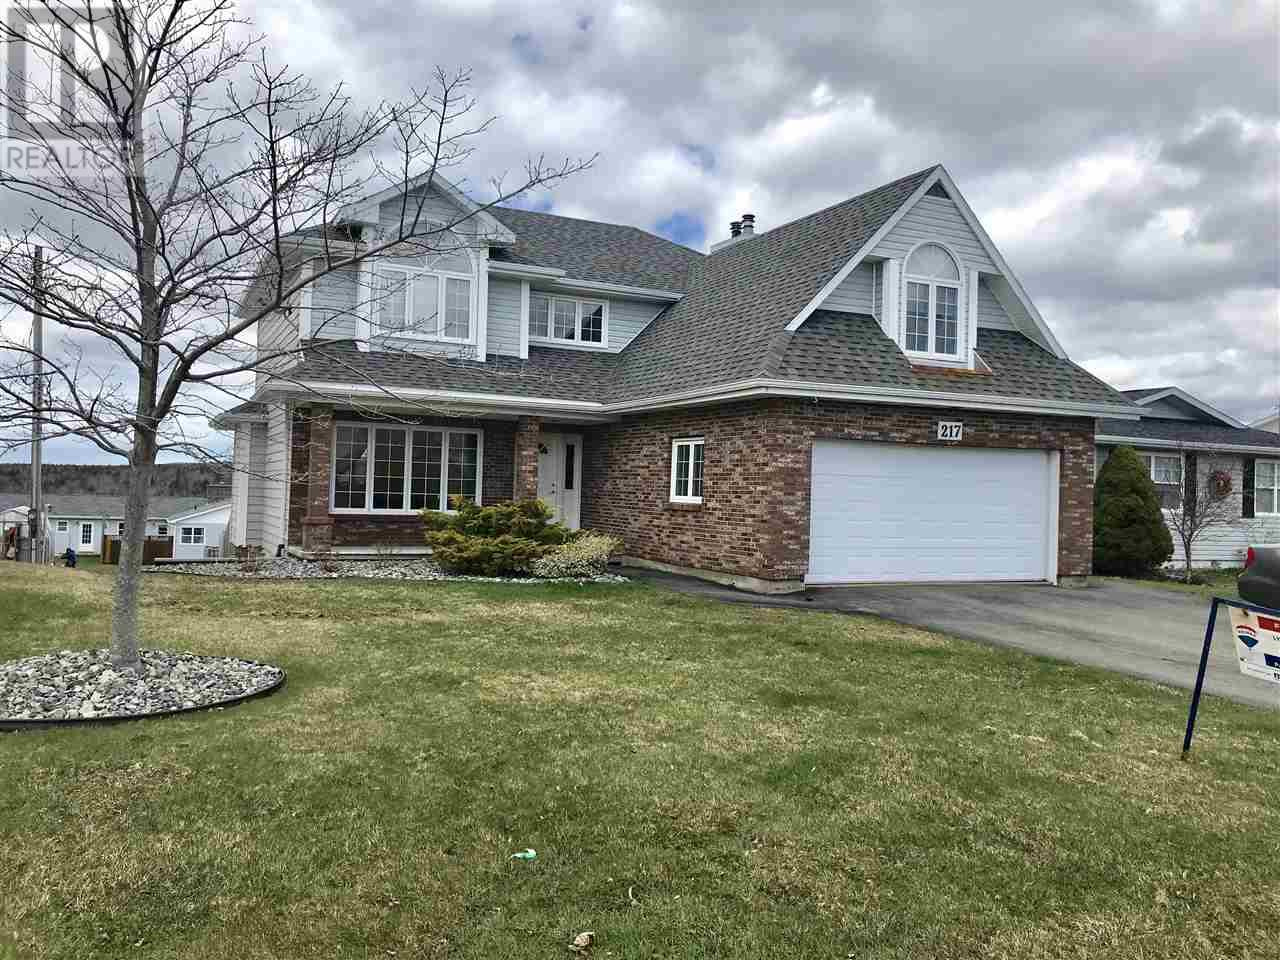 Removed: 217 Macsween Street, Port Hawkesbury, NS - Removed on 2019-06-19 05:57:09